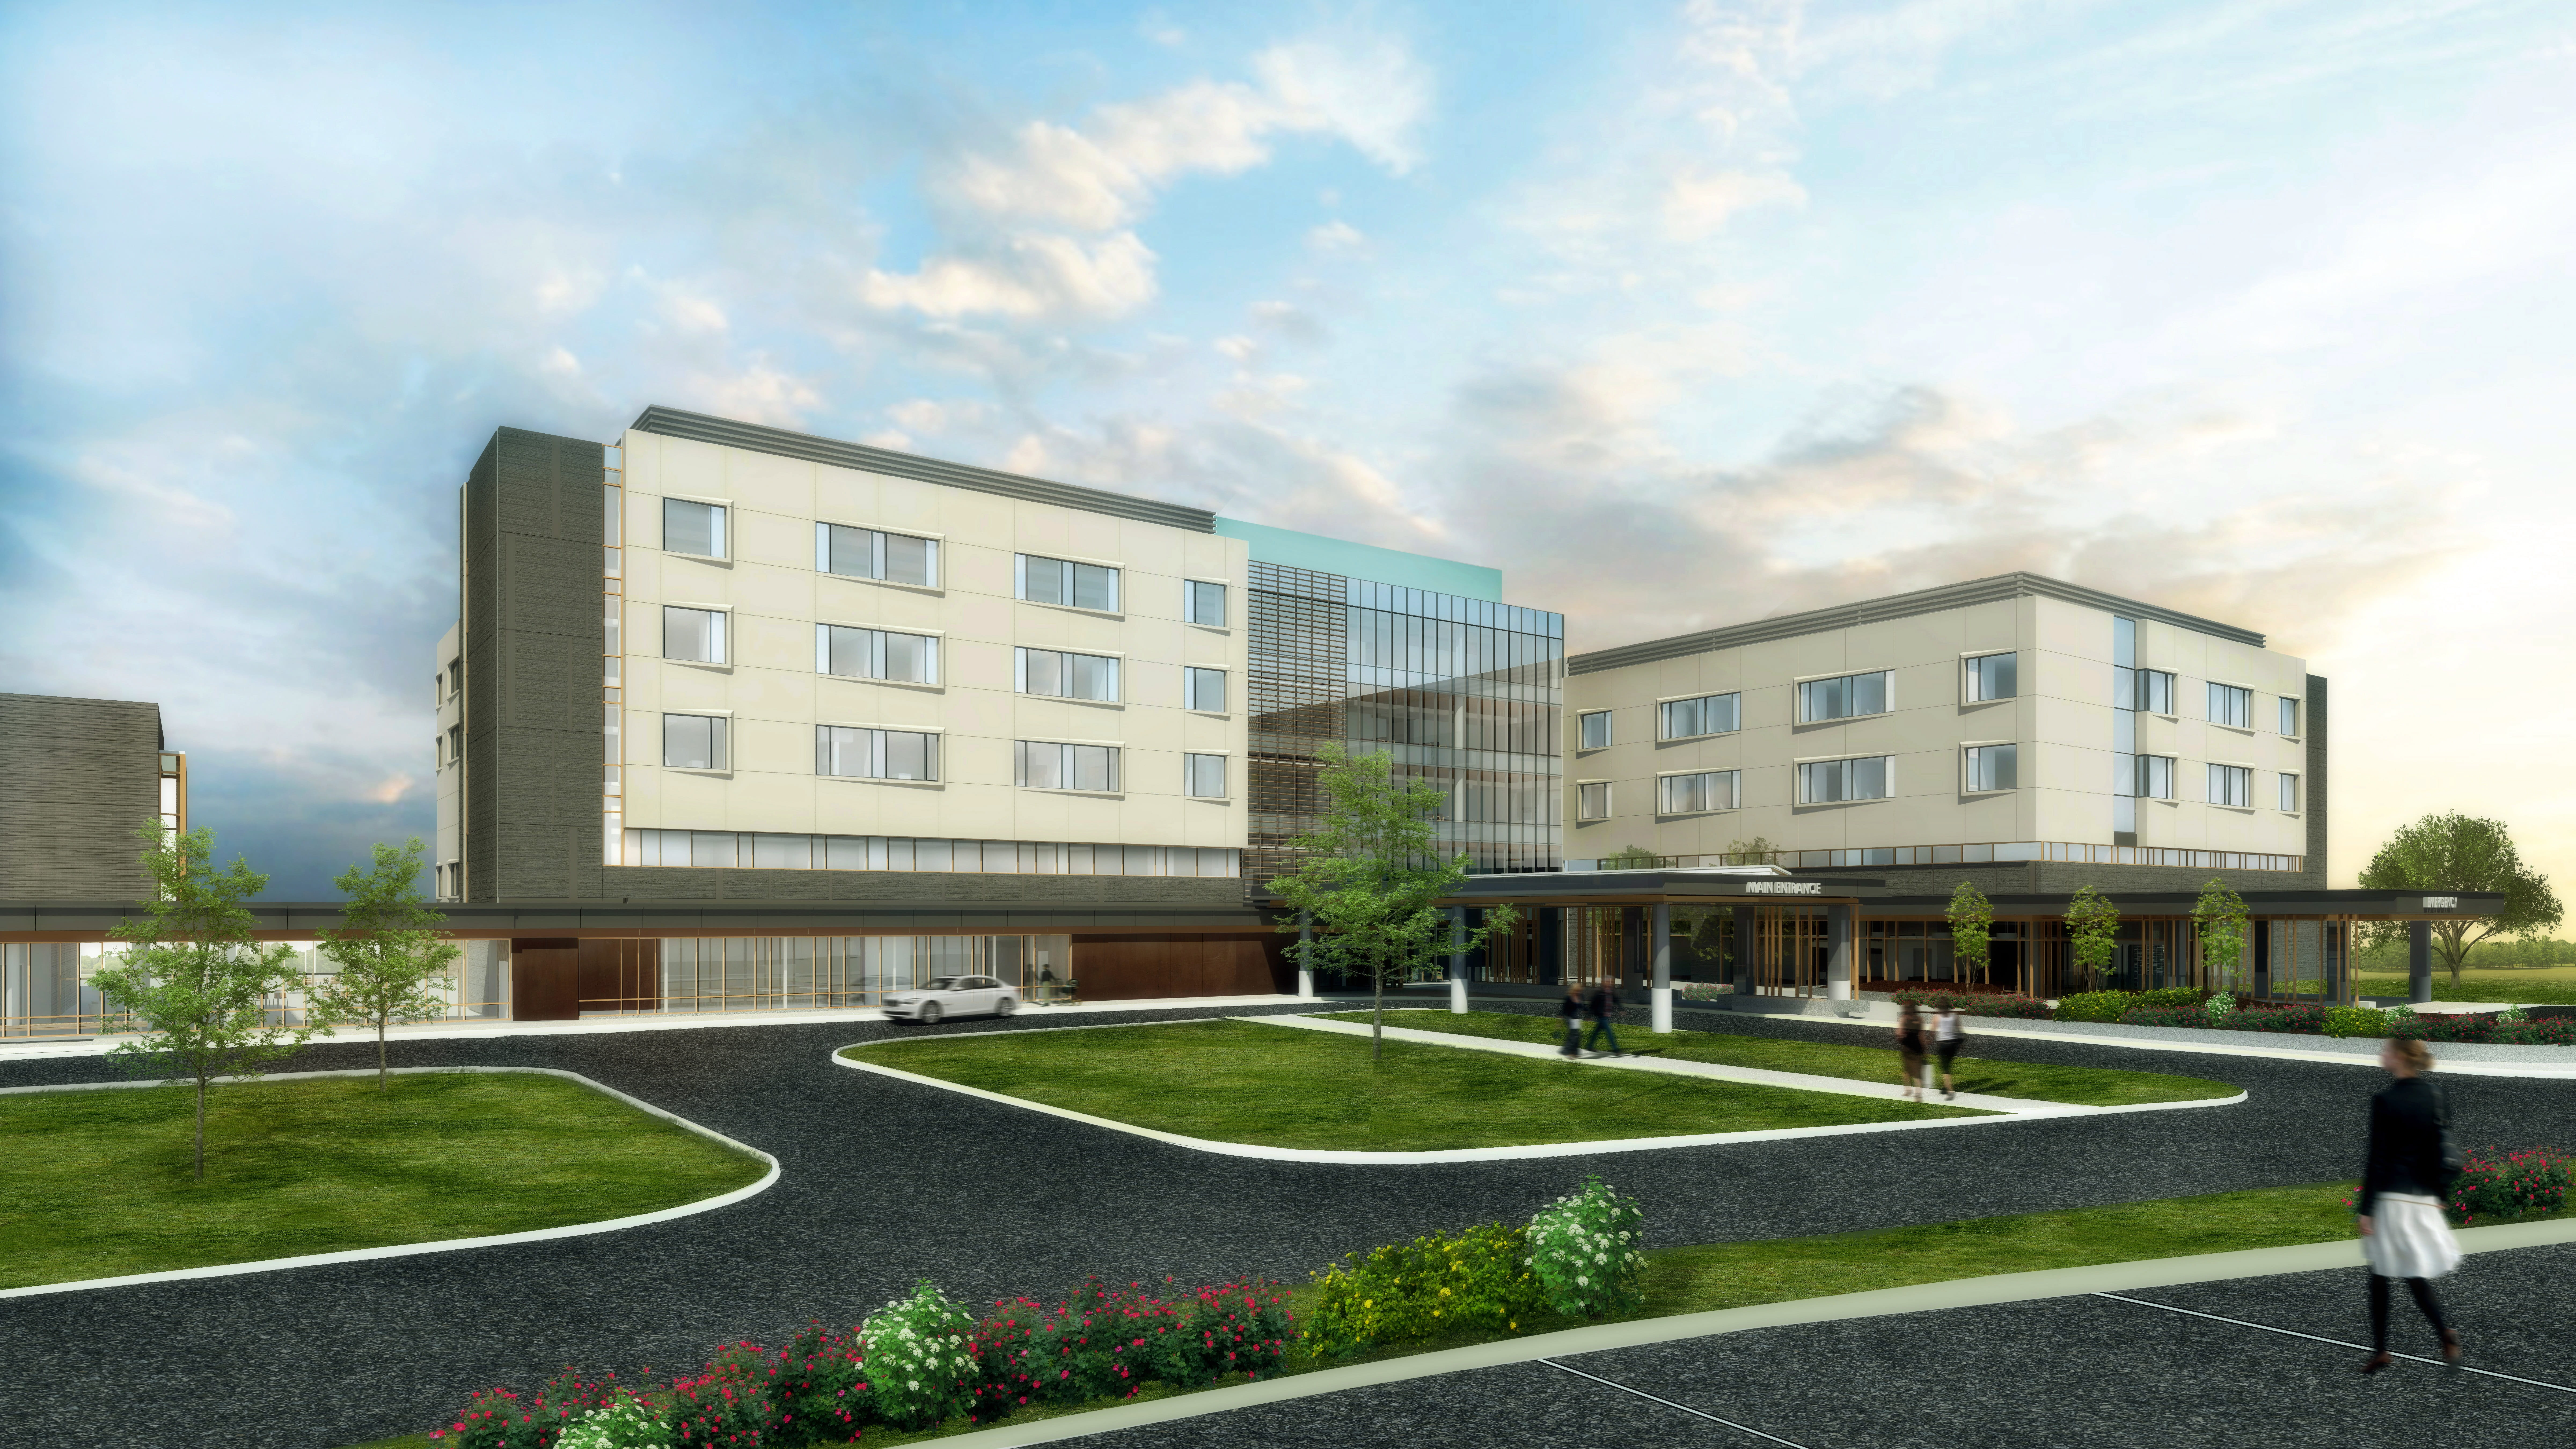 Construction of UPMC Pinnacle Memorial Replacement Hospital